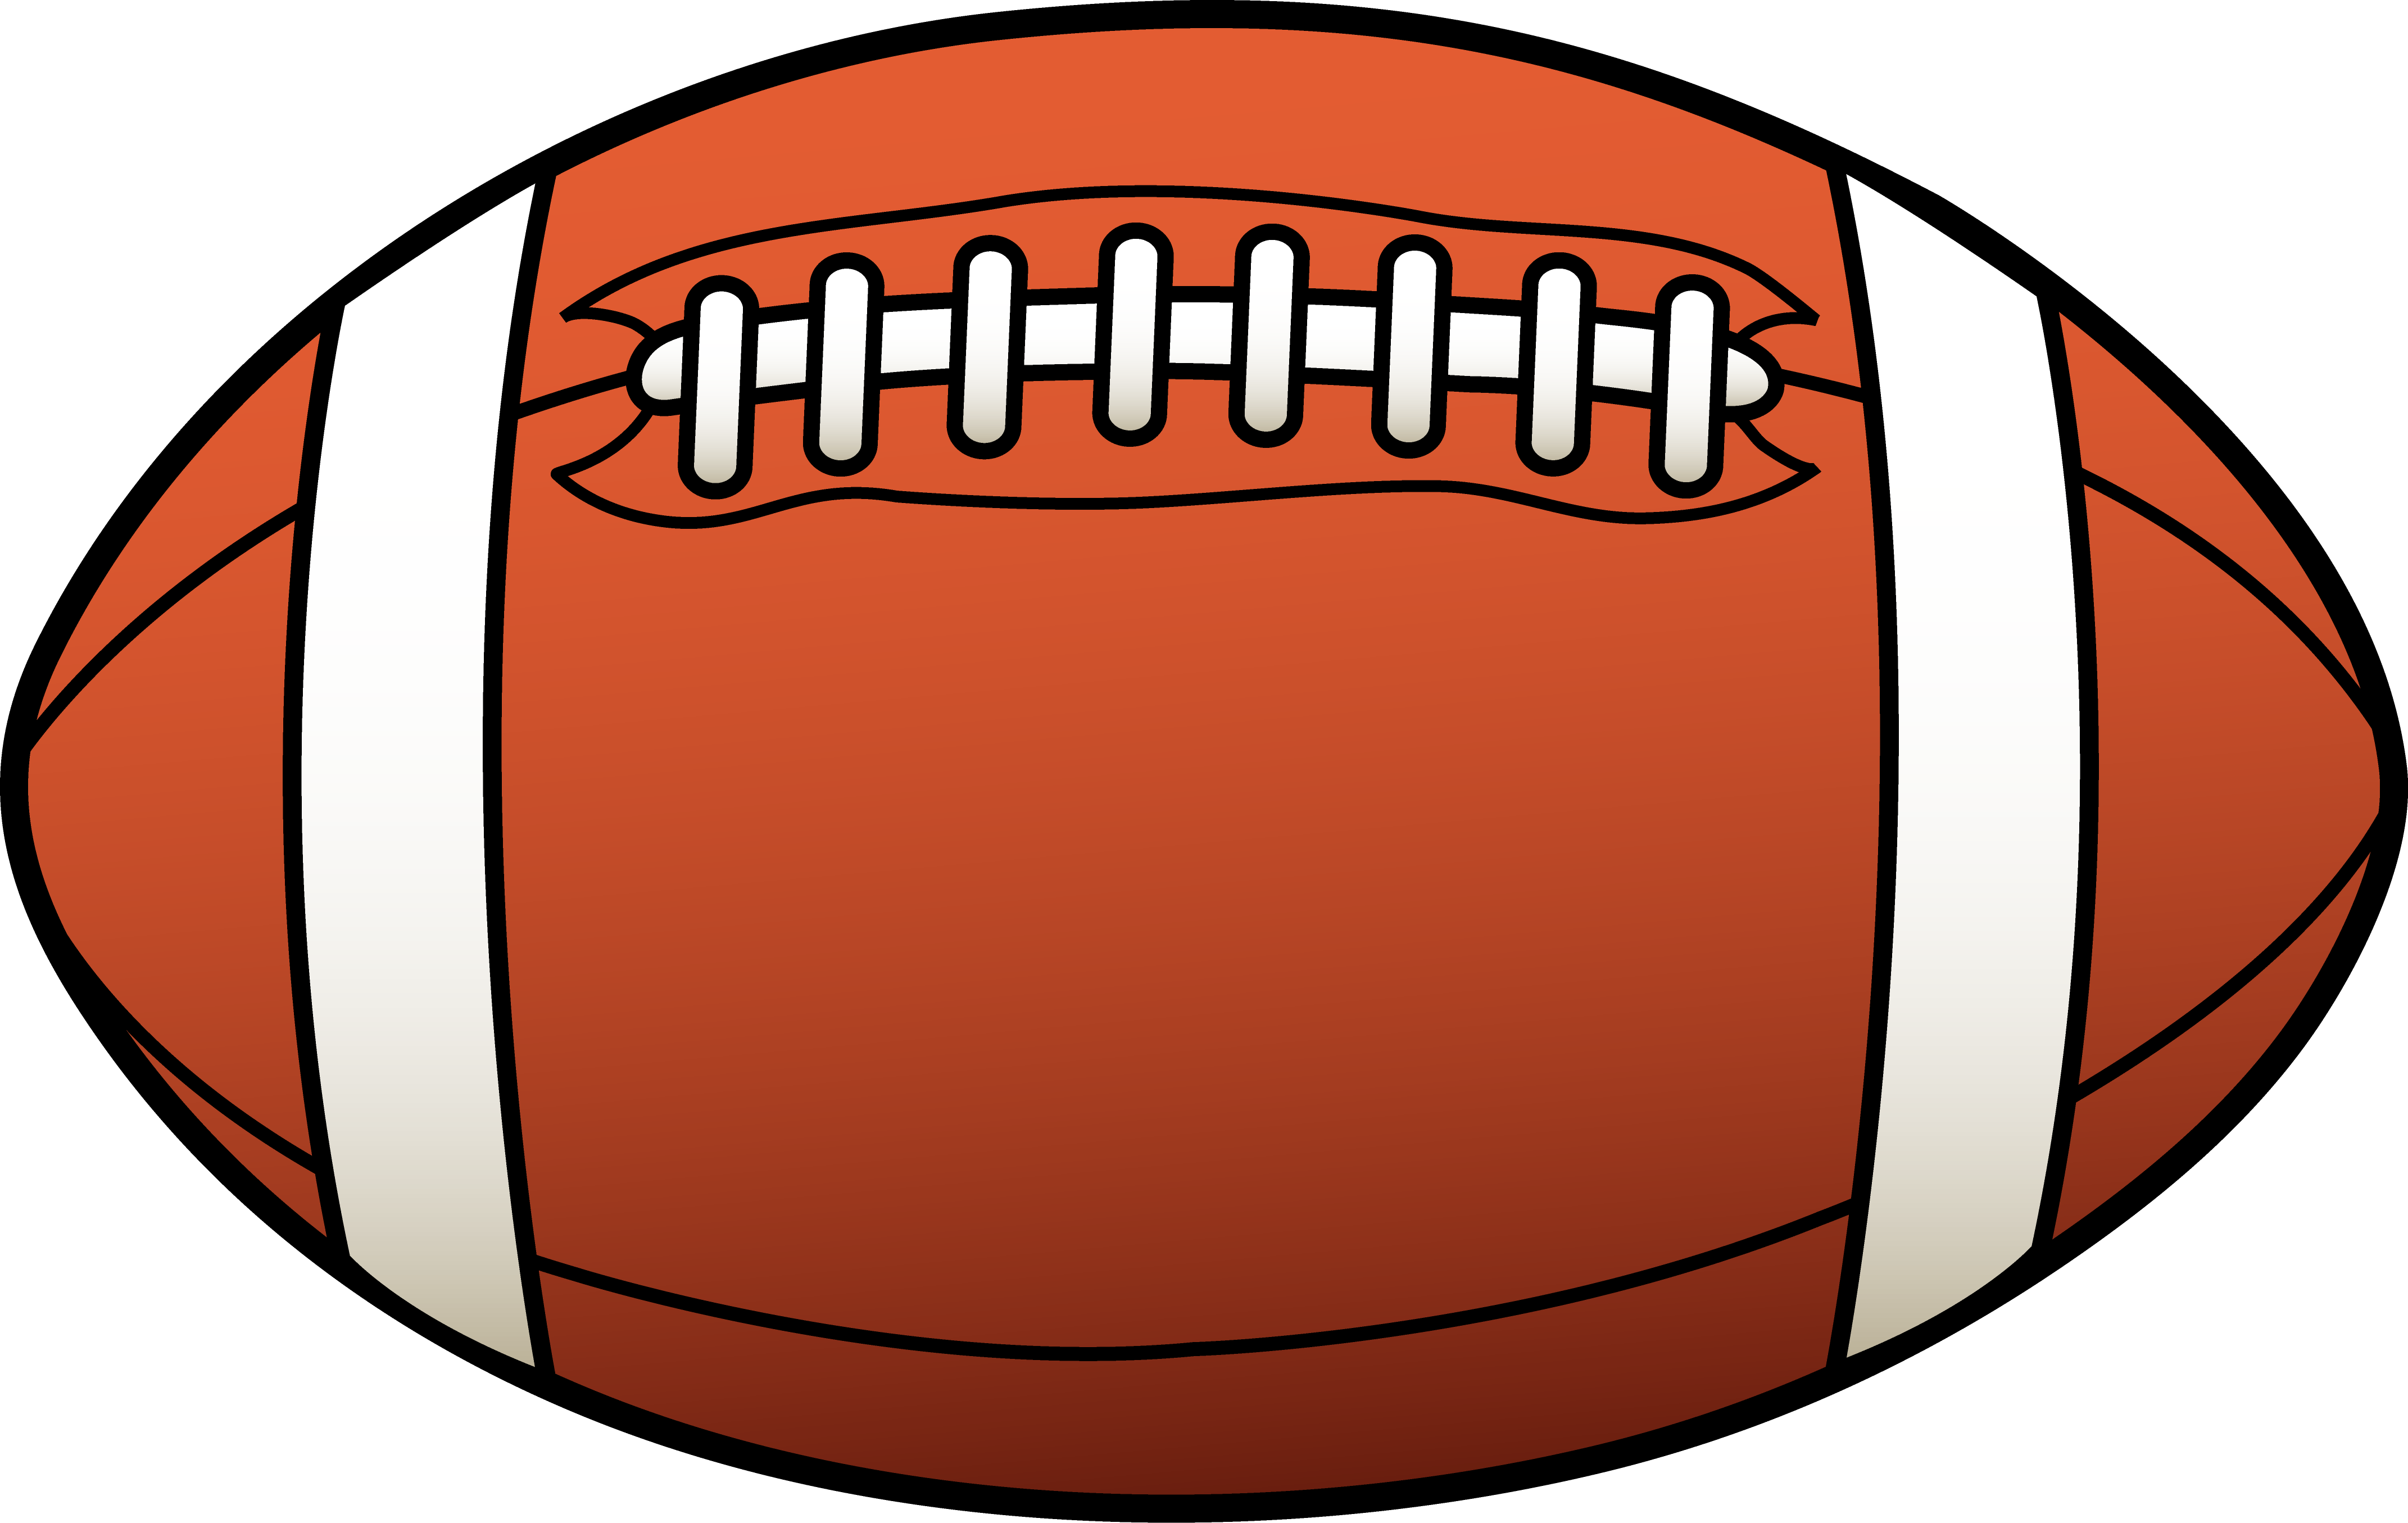 Football clipart black and white free images 2